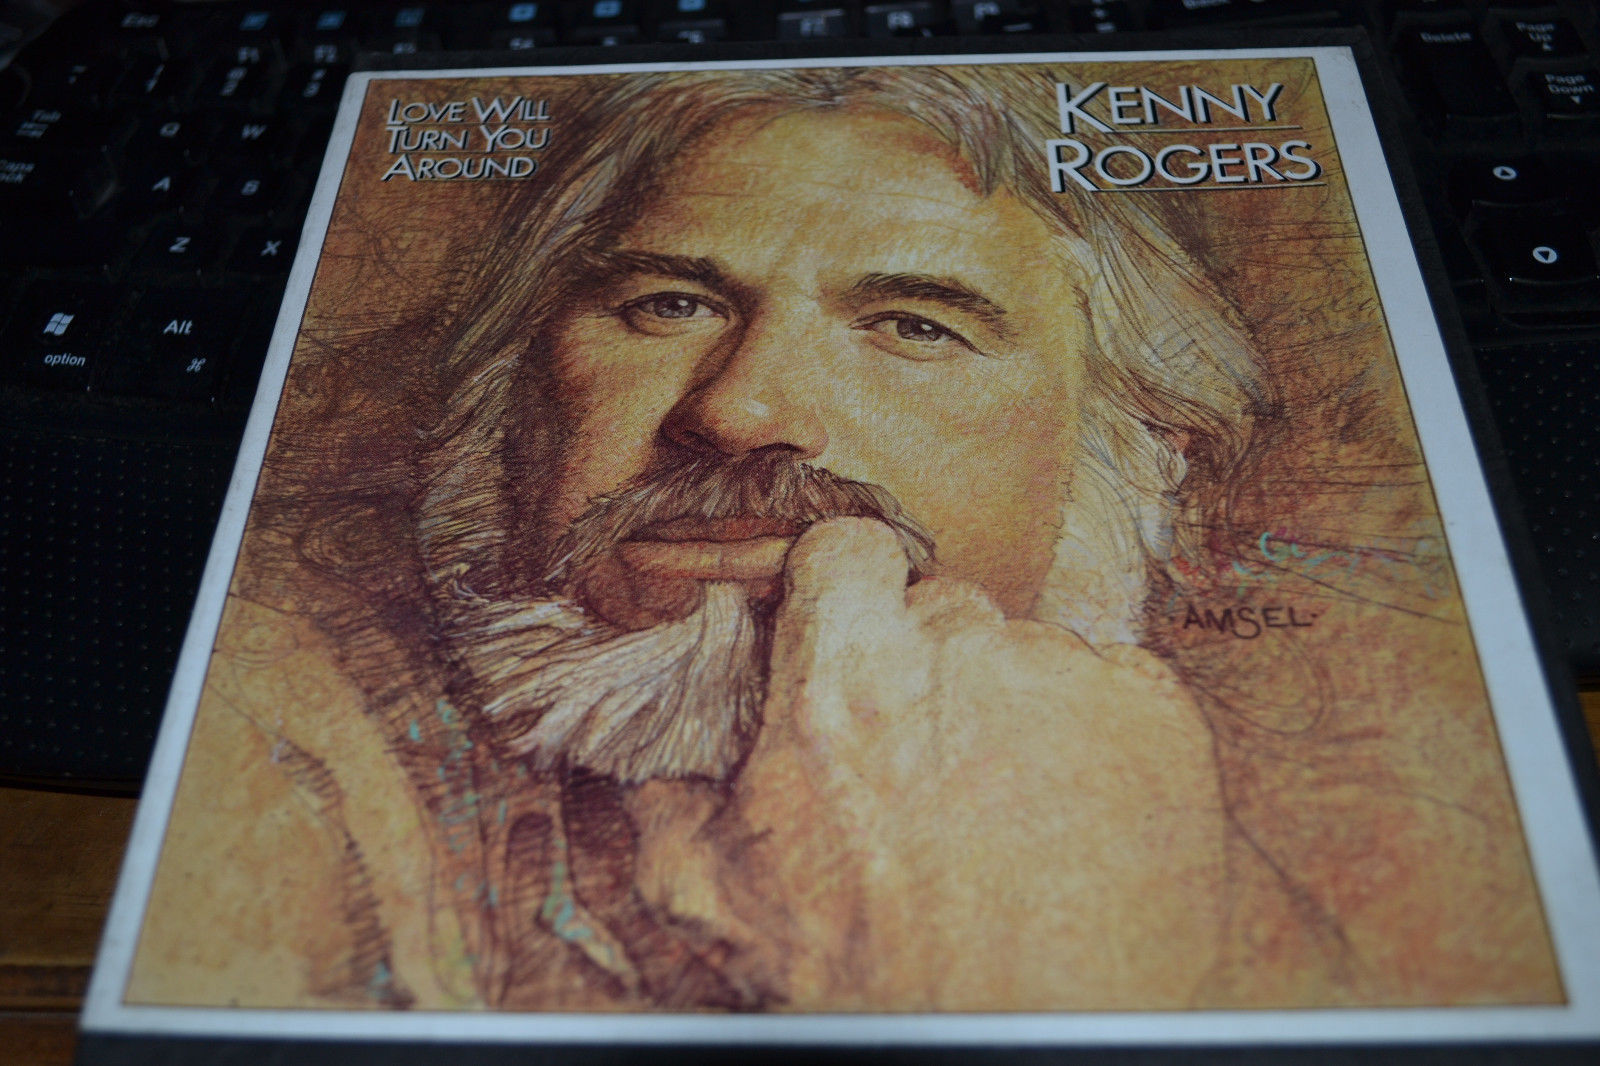 Kenny Rogers Love Will Turn You Around Reel to Reel Tape Very Nice Shape!!!